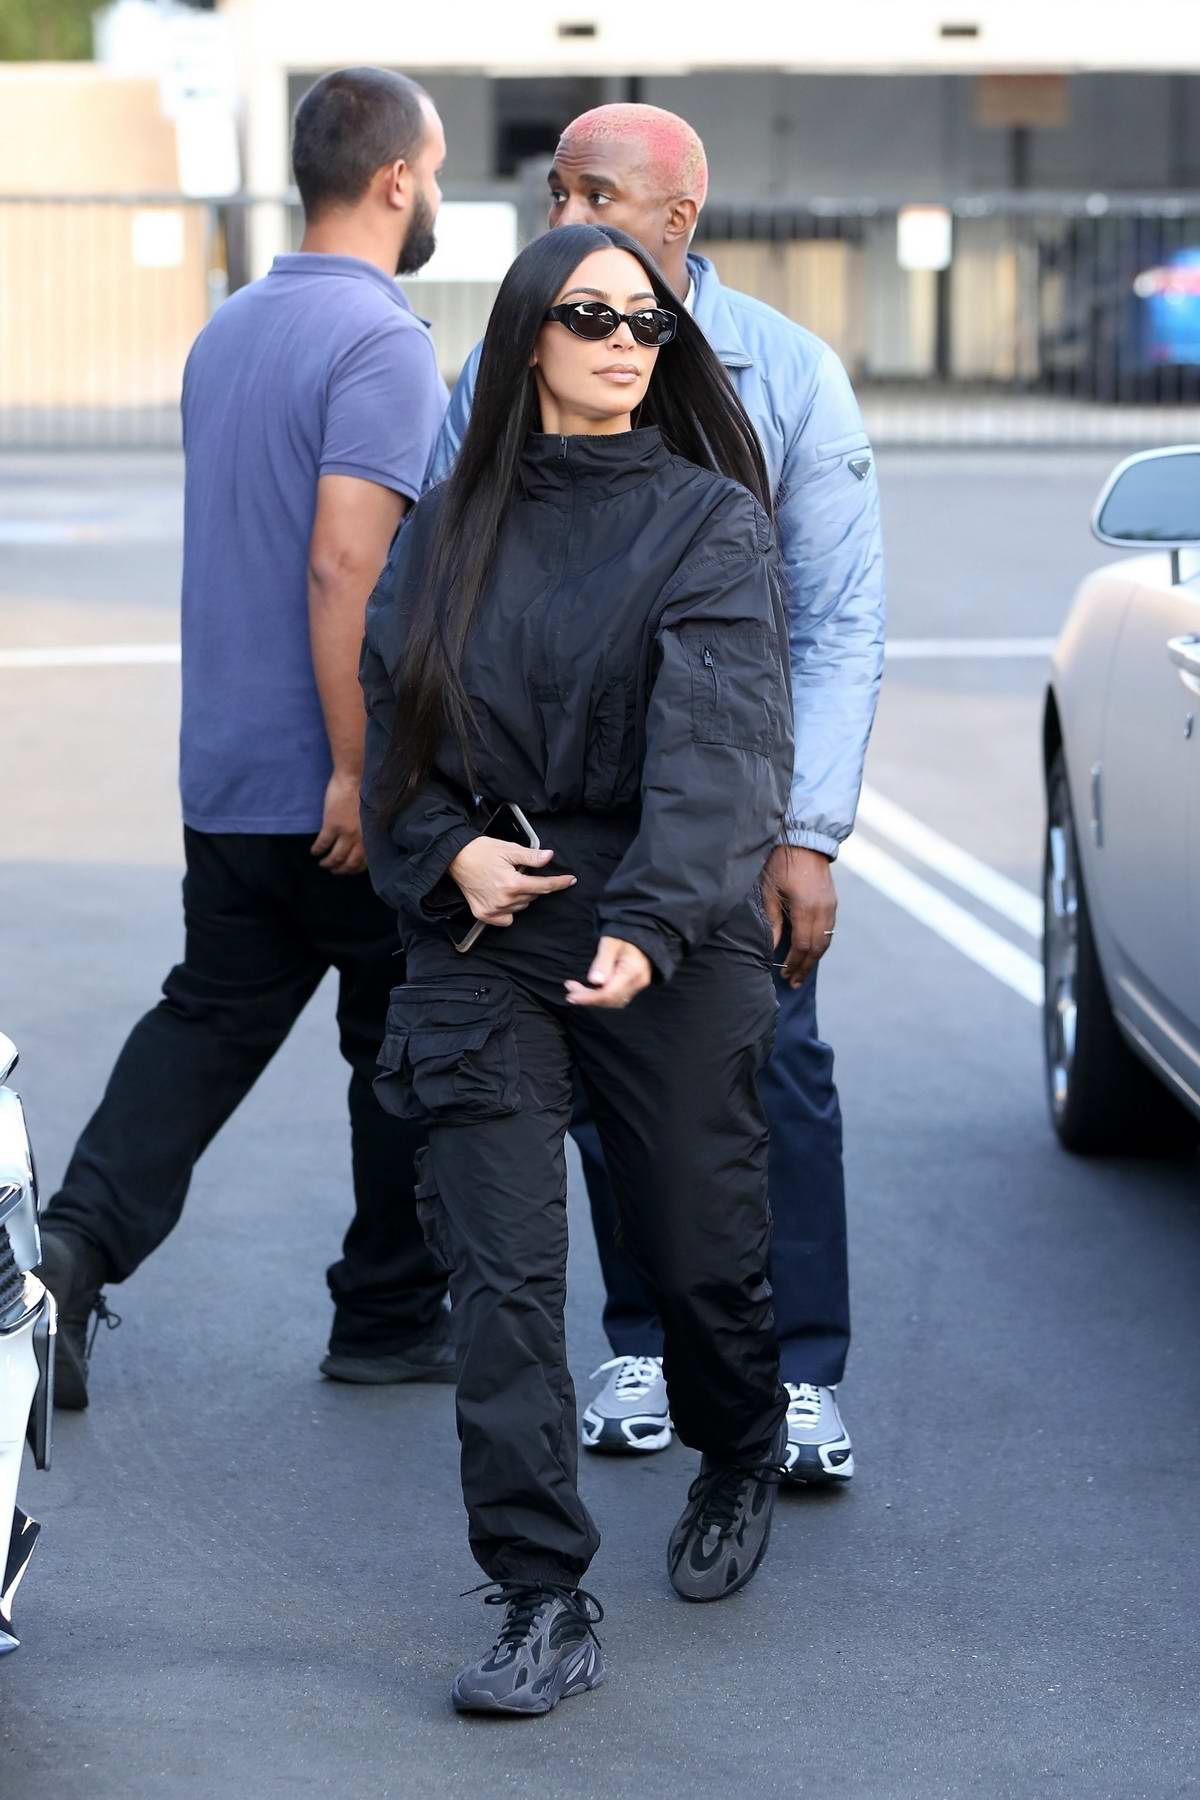 Kim Kardashian dons all black as she arrives at XIV Karats jewelry store with Kanye West in Los Angeles